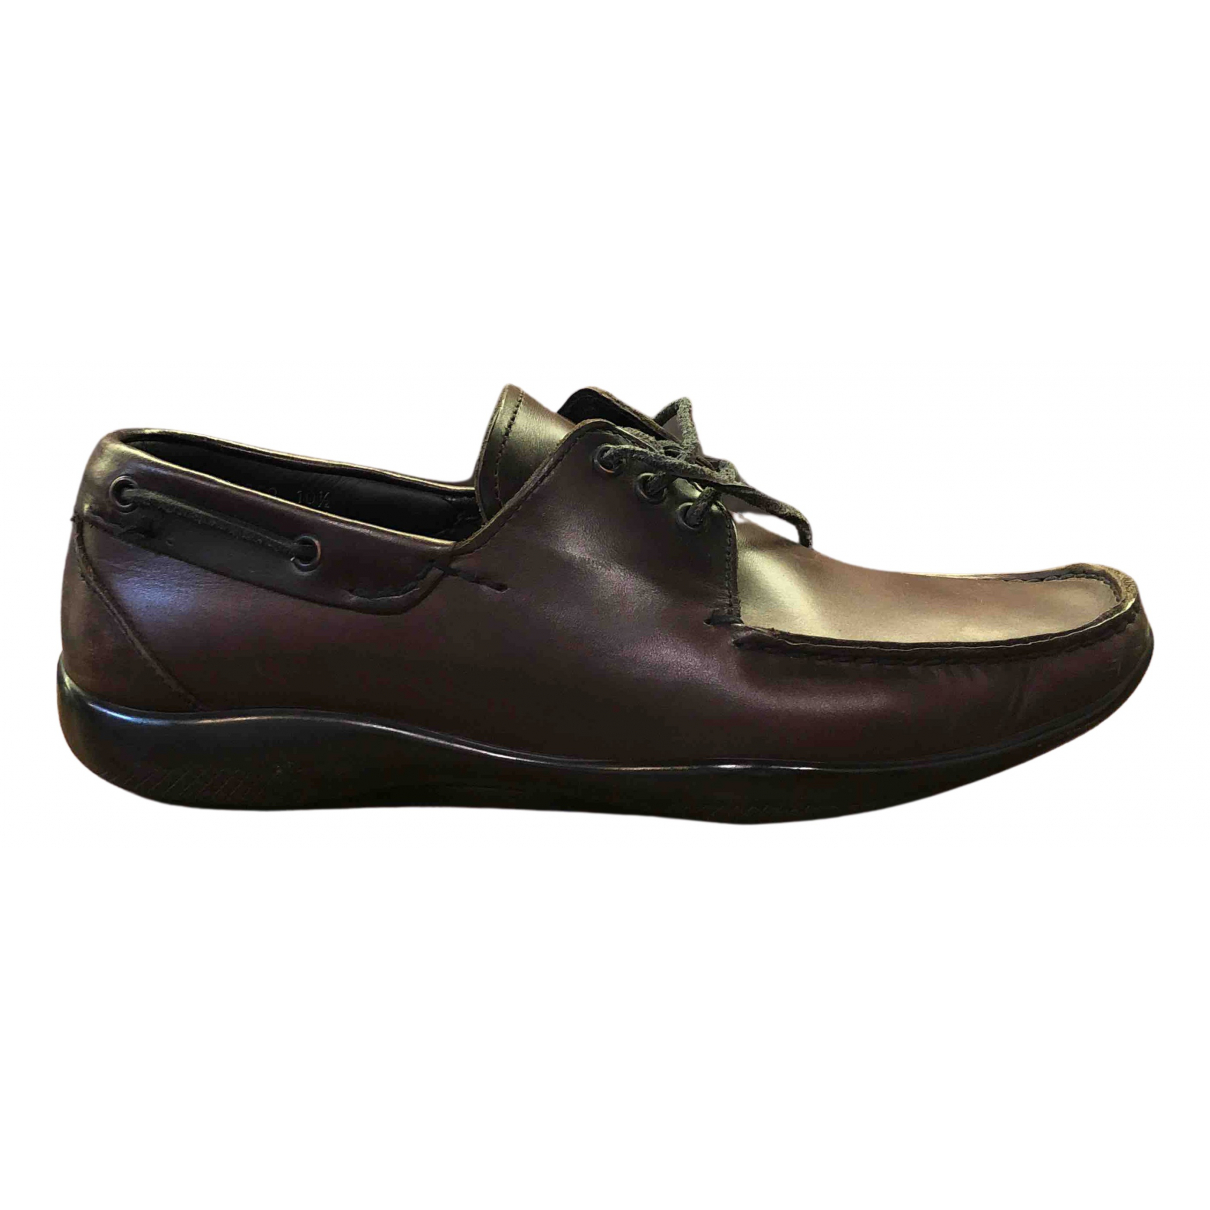 Prada N Brown Leather Lace ups for Men 10.5 US